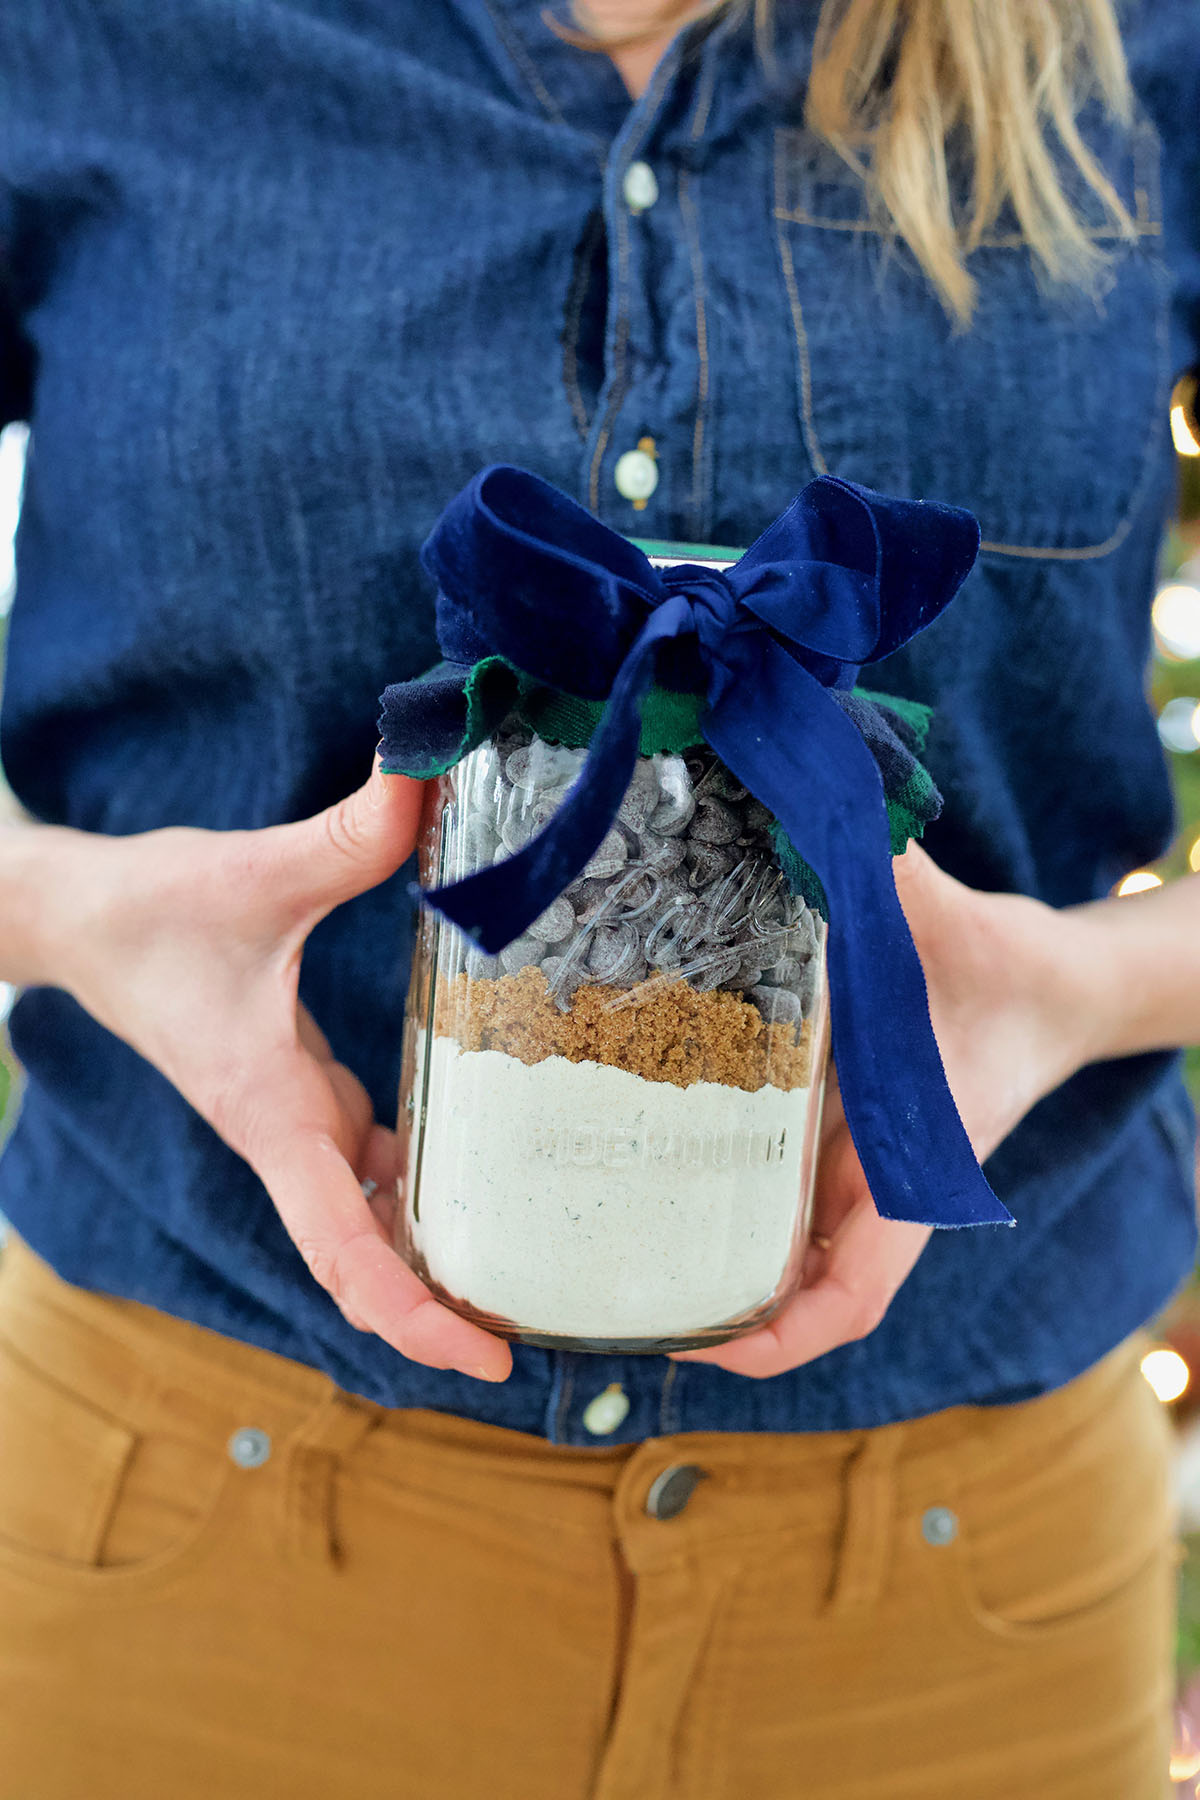 4 DIY Edible Herbal Gifts To Make At The Last Minute | Herbal Academy | For last-minute gift making, create edible herbal gifts such as delicious salts and sugars and yummy treats like electuaries and herbal cookies-in-a-jar.